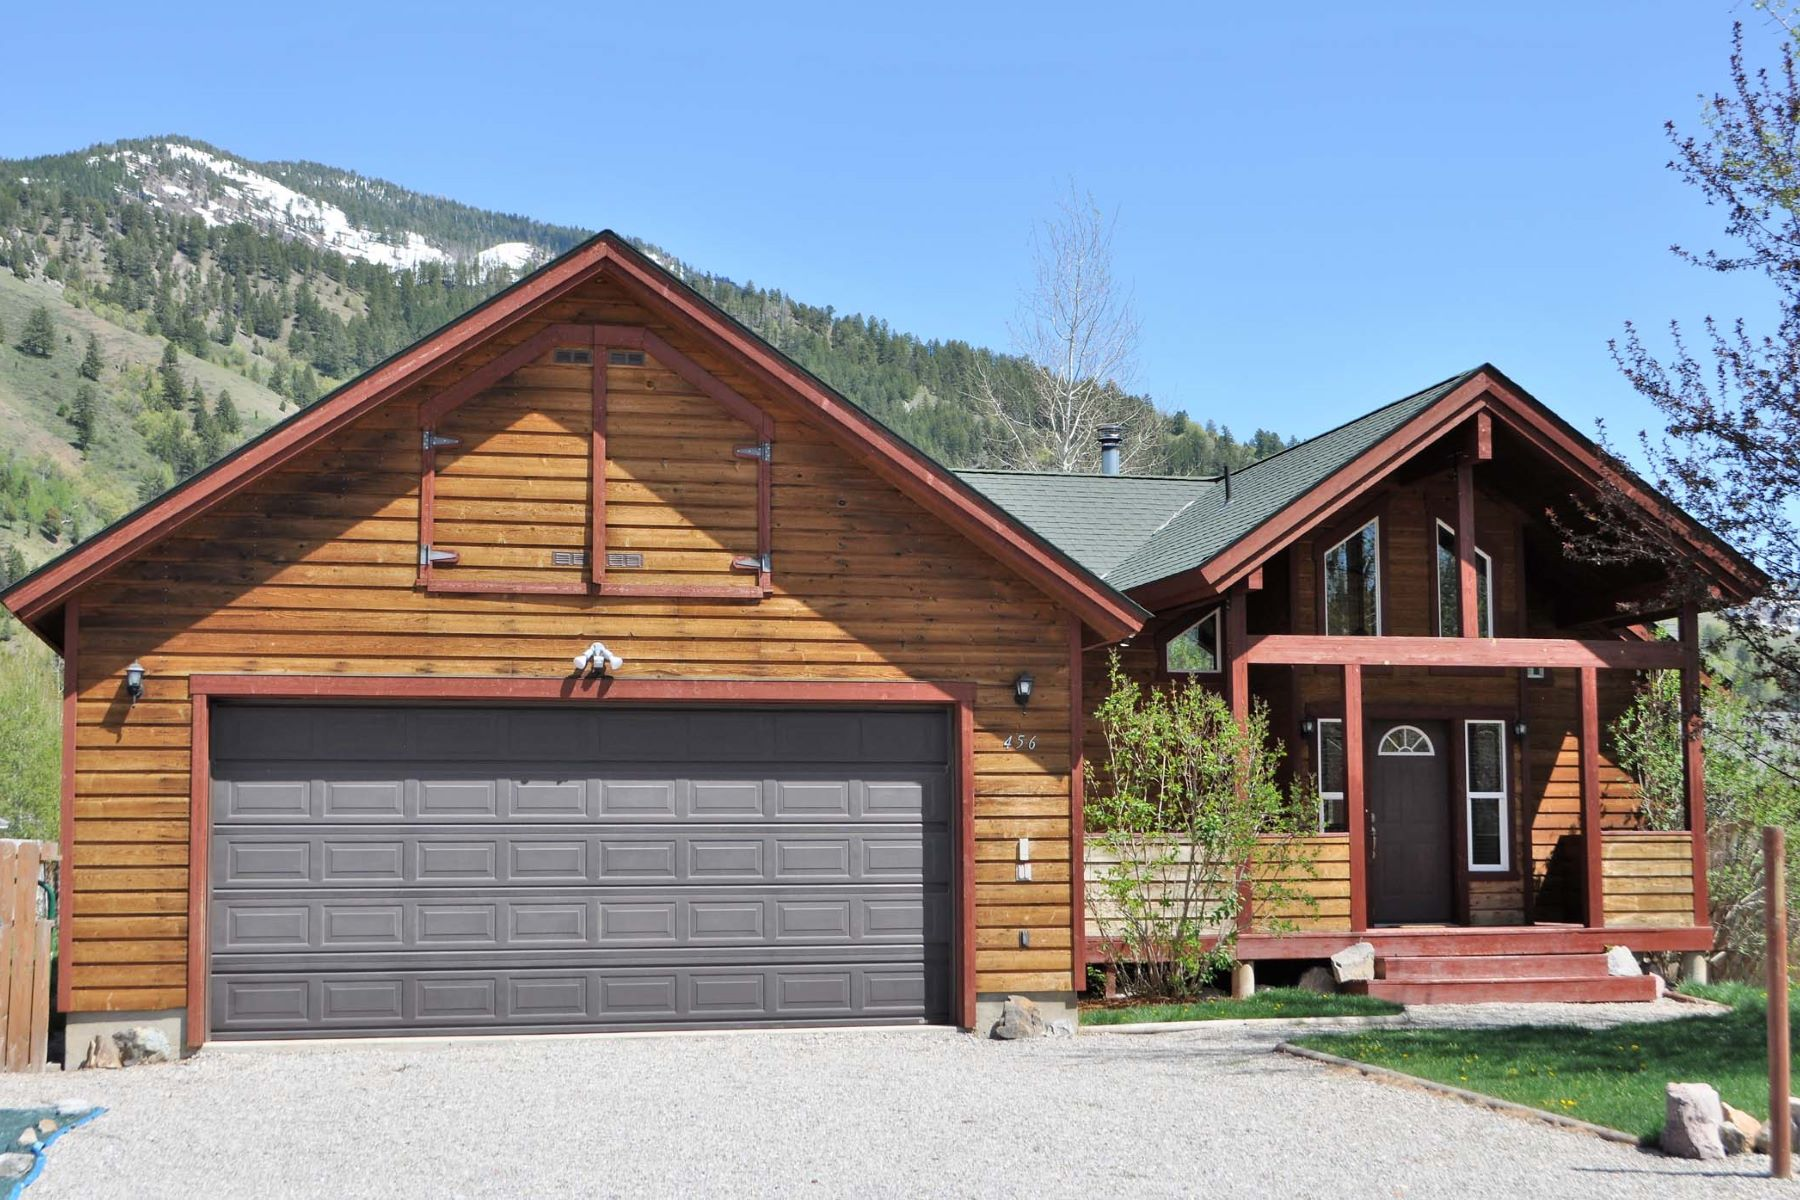 Casa Unifamiliar por un Venta en Updated Three Bedroom Home in Alpine 456 Greys River Loop Alpine, Wyoming 83128 Estados Unidos